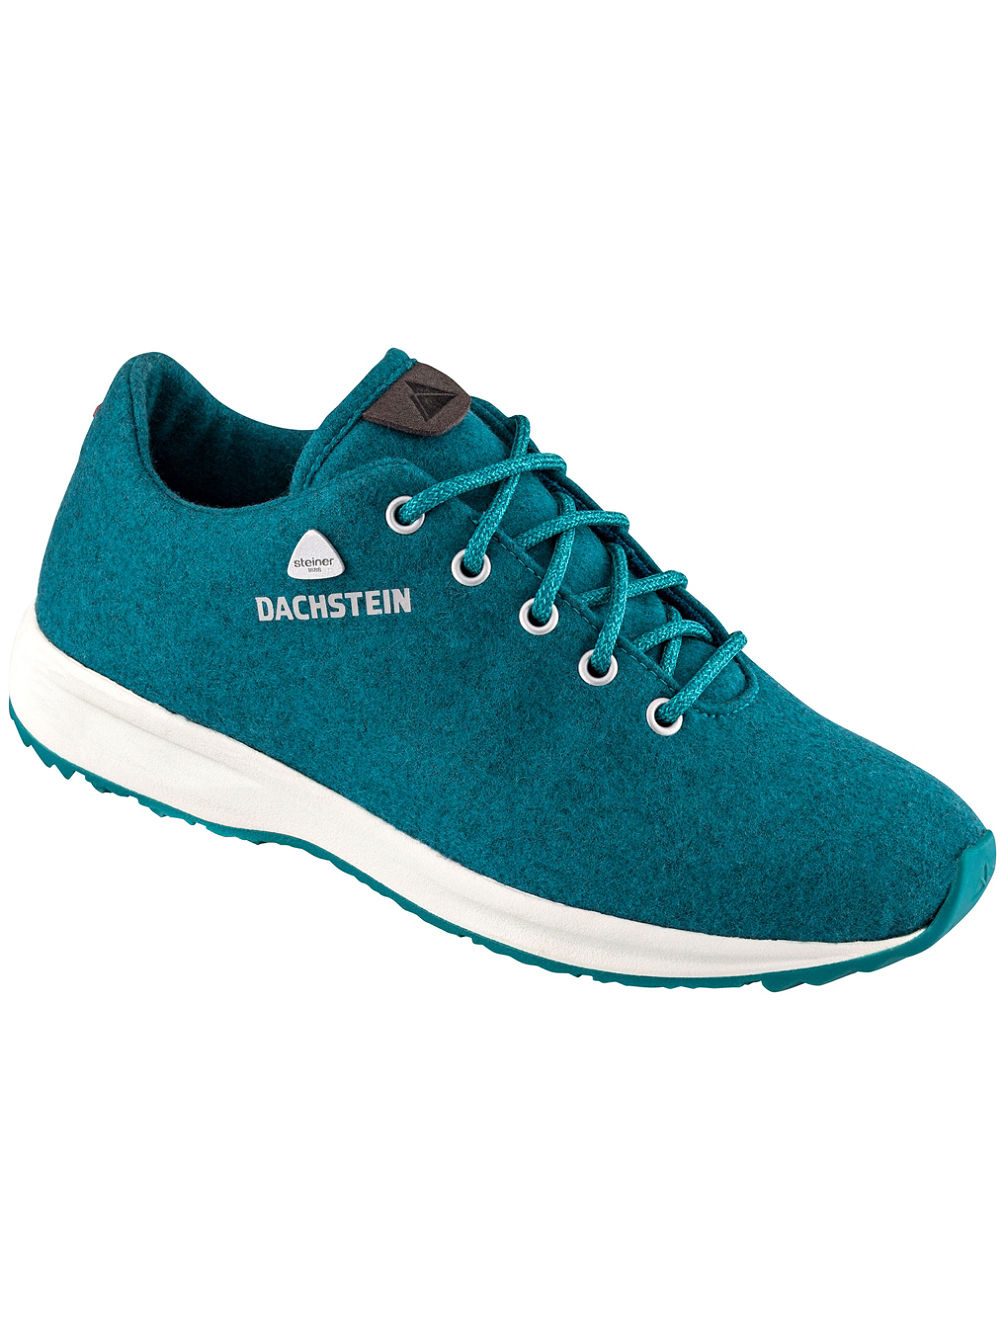 Dach - Steiner Shoes Women